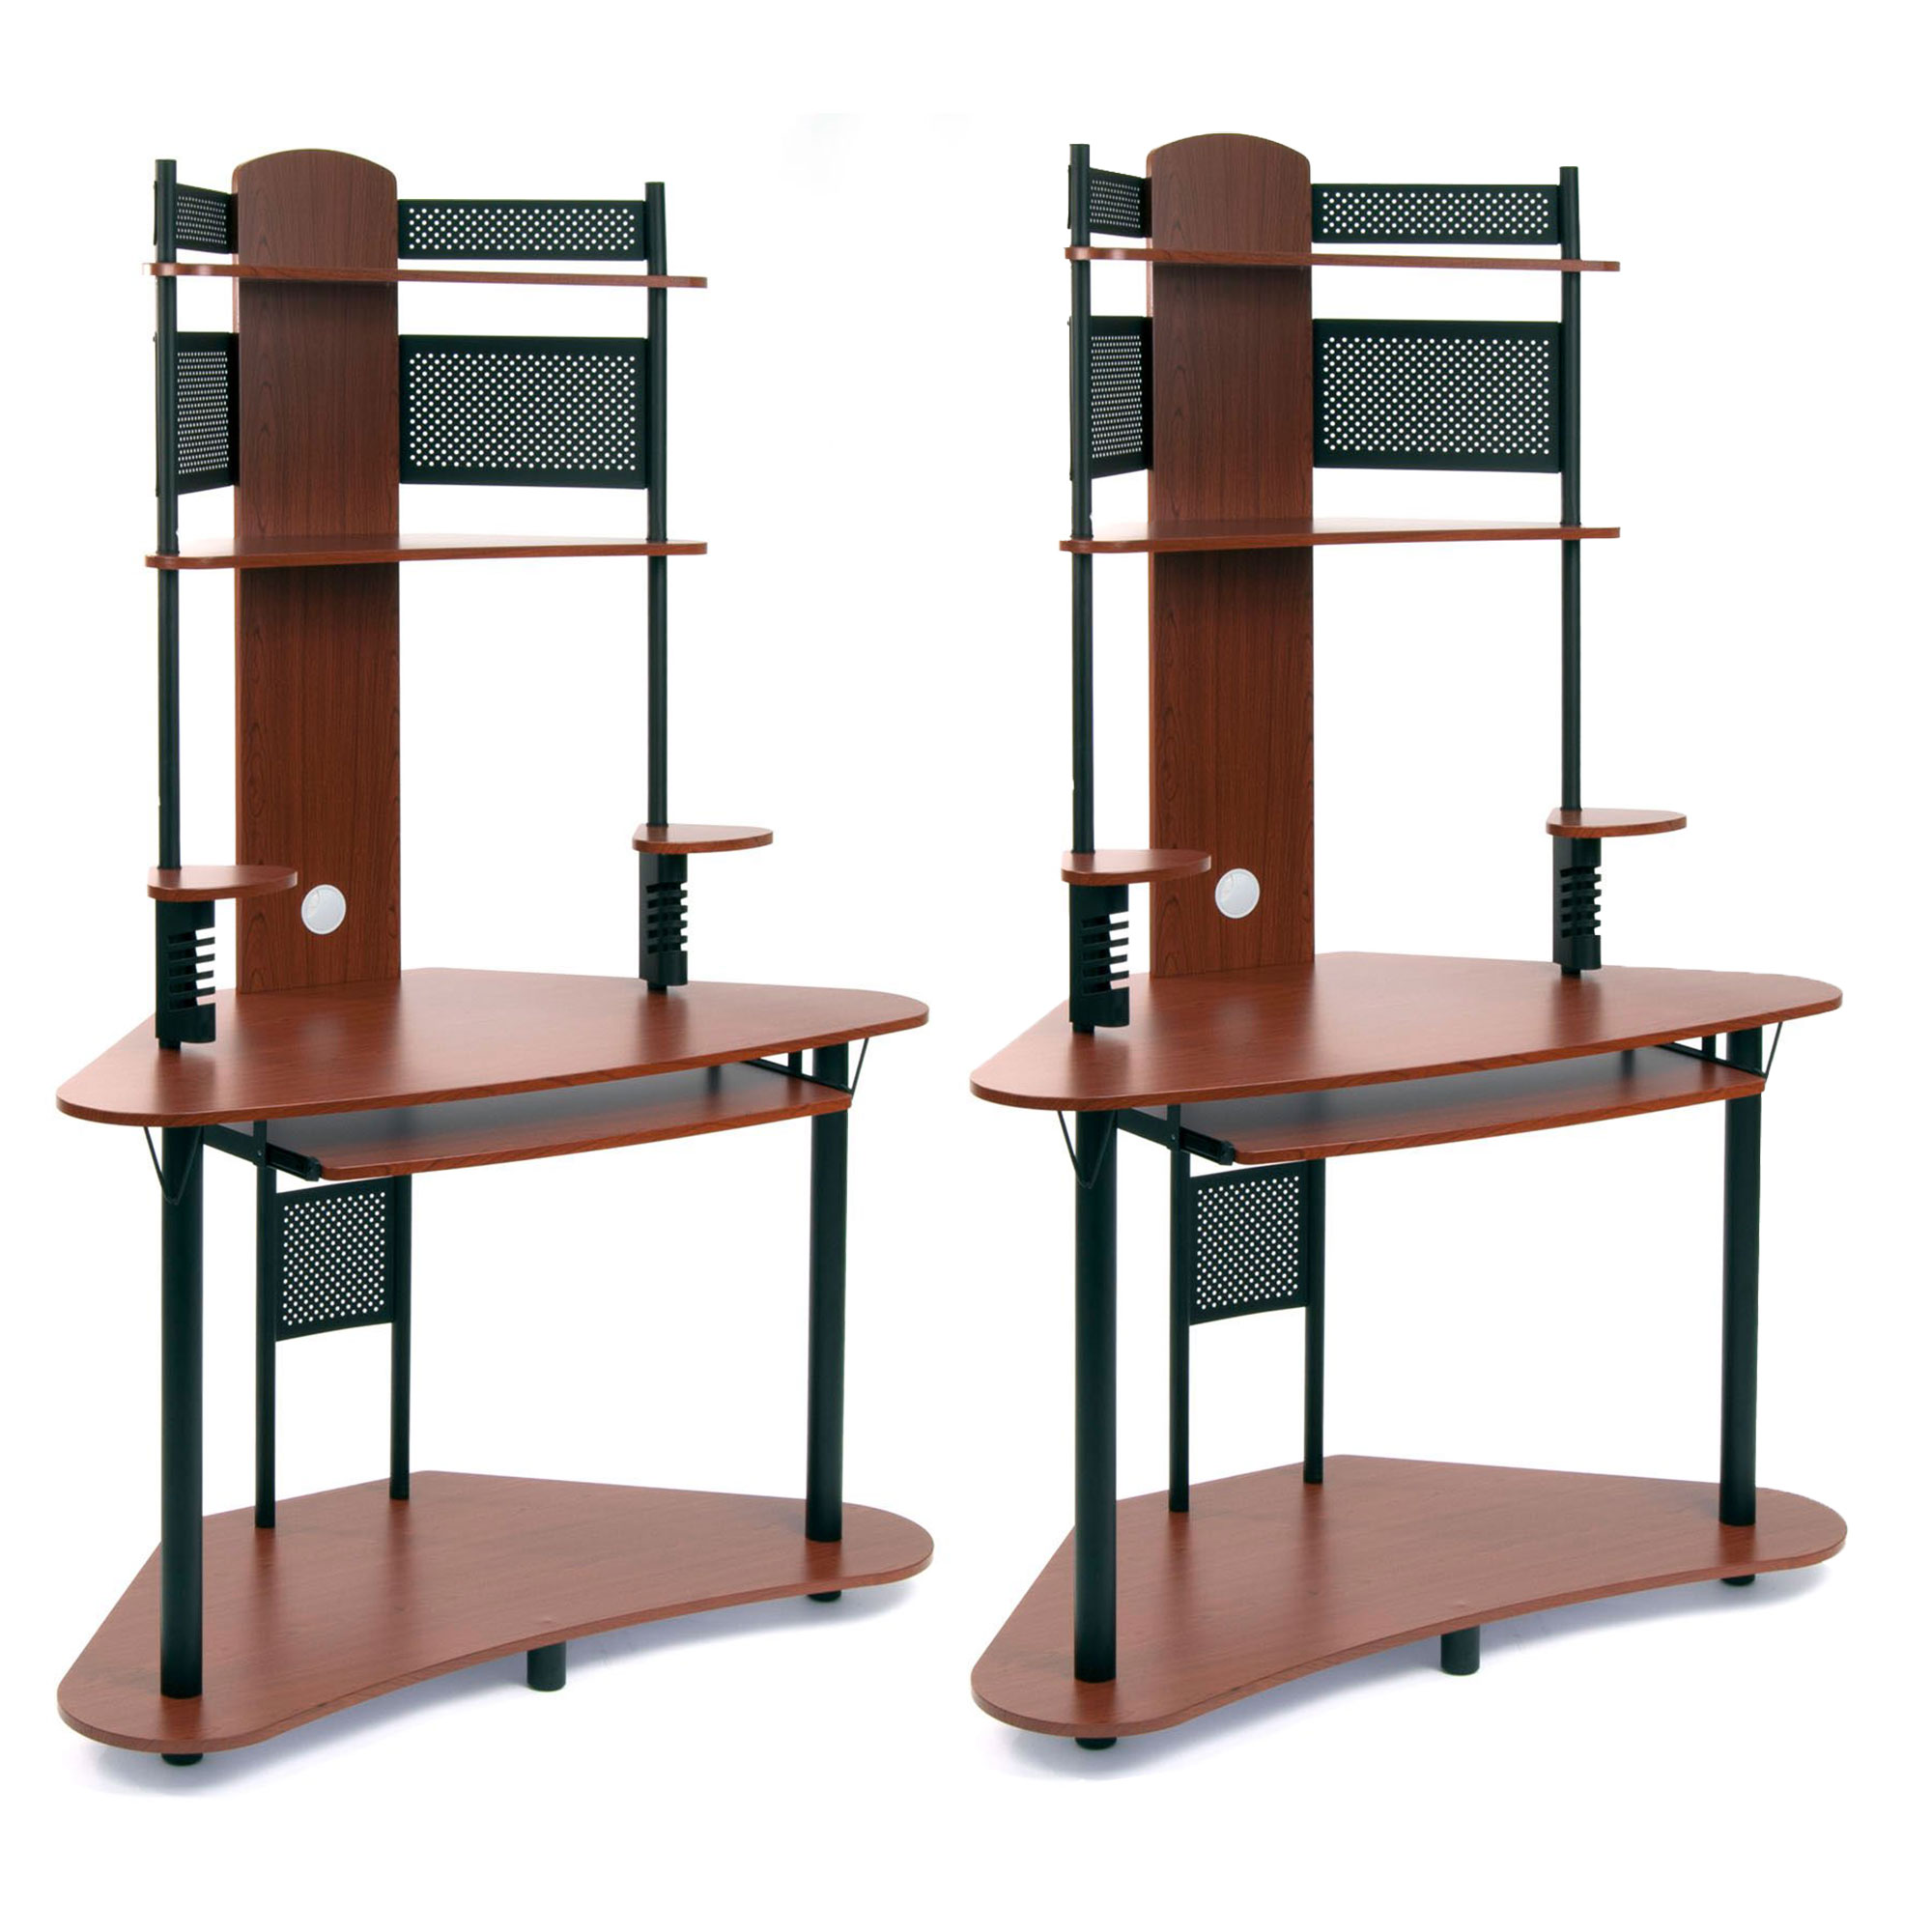 Home office furniture cherry Traditional Studio Designs Home Office Furniture Arch Tower Computer Desk Cherry 2 Pack Walmartcom Studio Designs Home Office Furniture Arch Tower Computer Desk